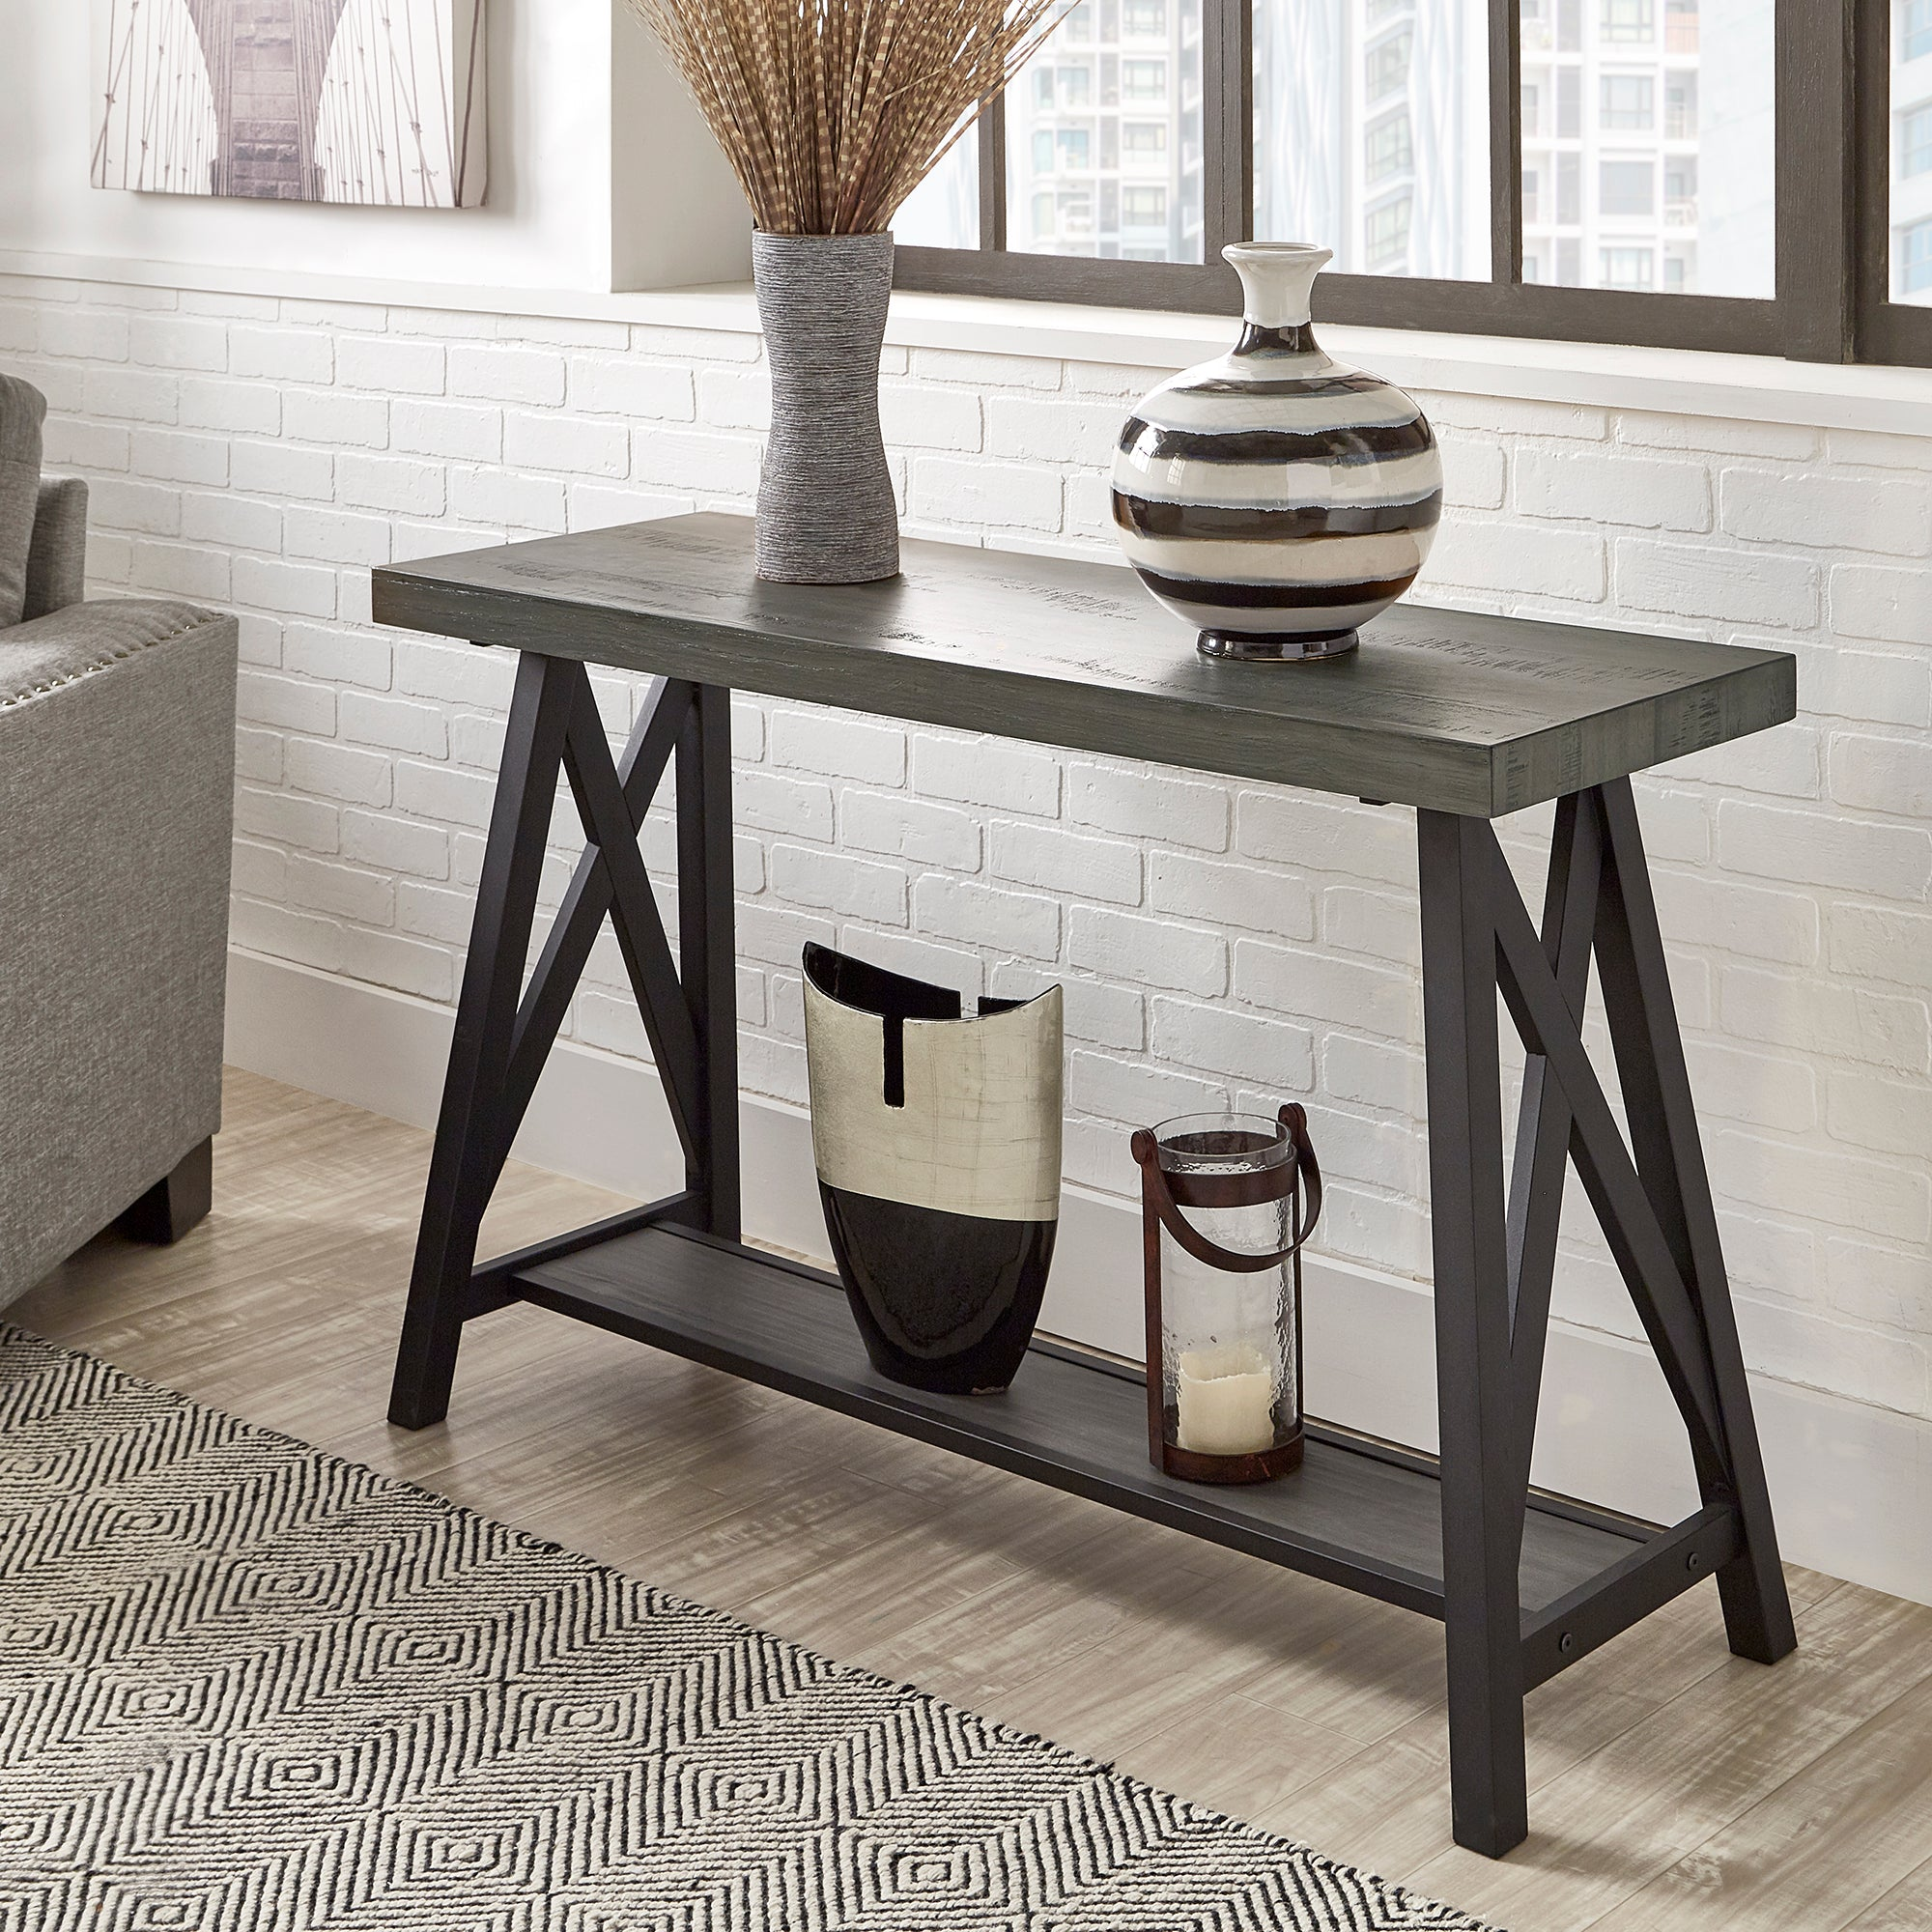 Sofa Table with Shelf - Grey